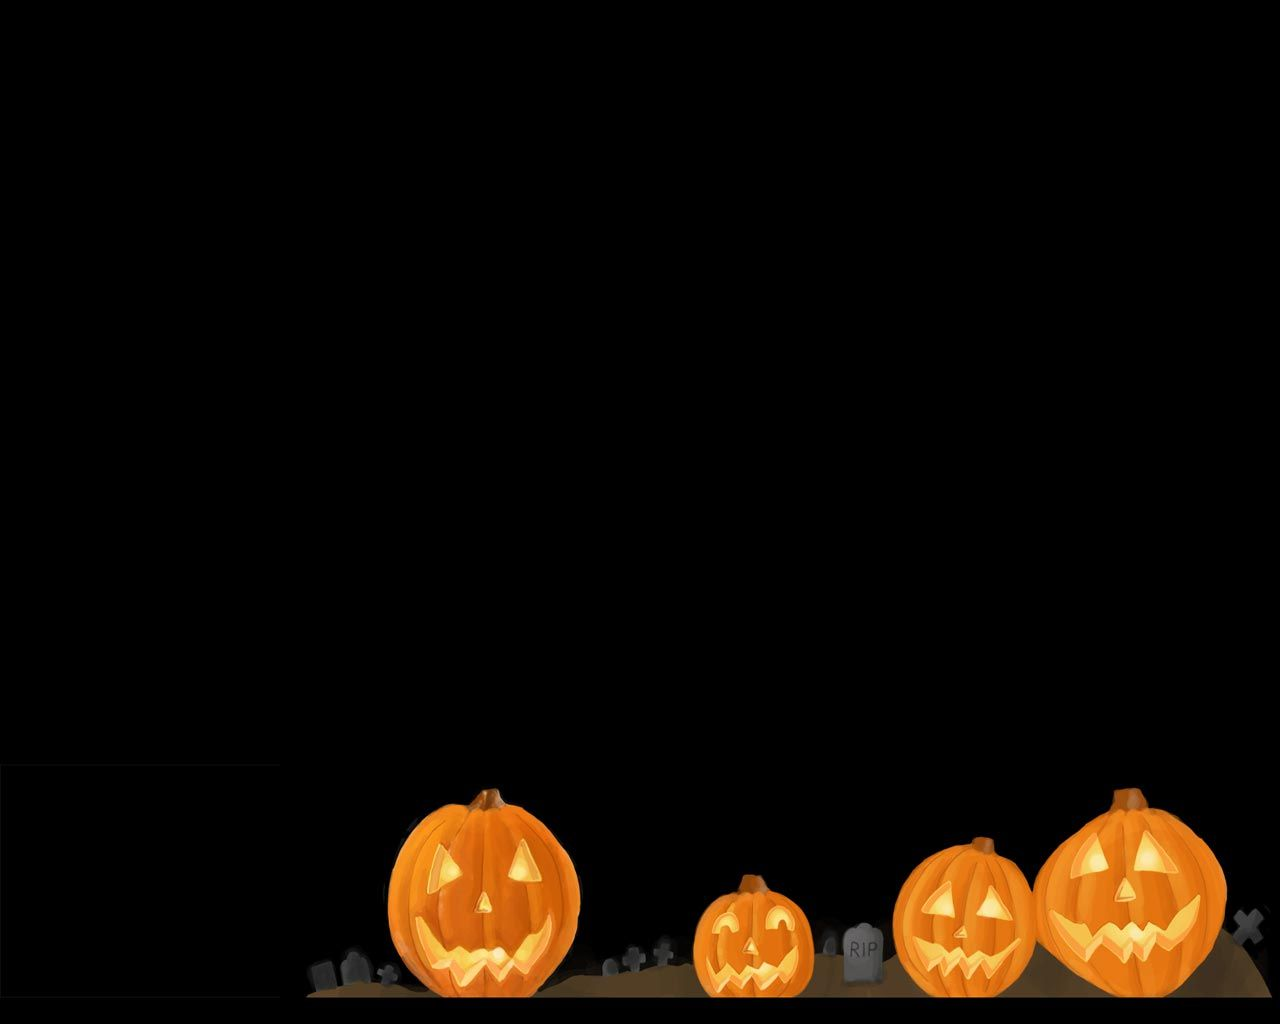 Halloween Snoopy Free HD Backgrounds Download Wallpapers